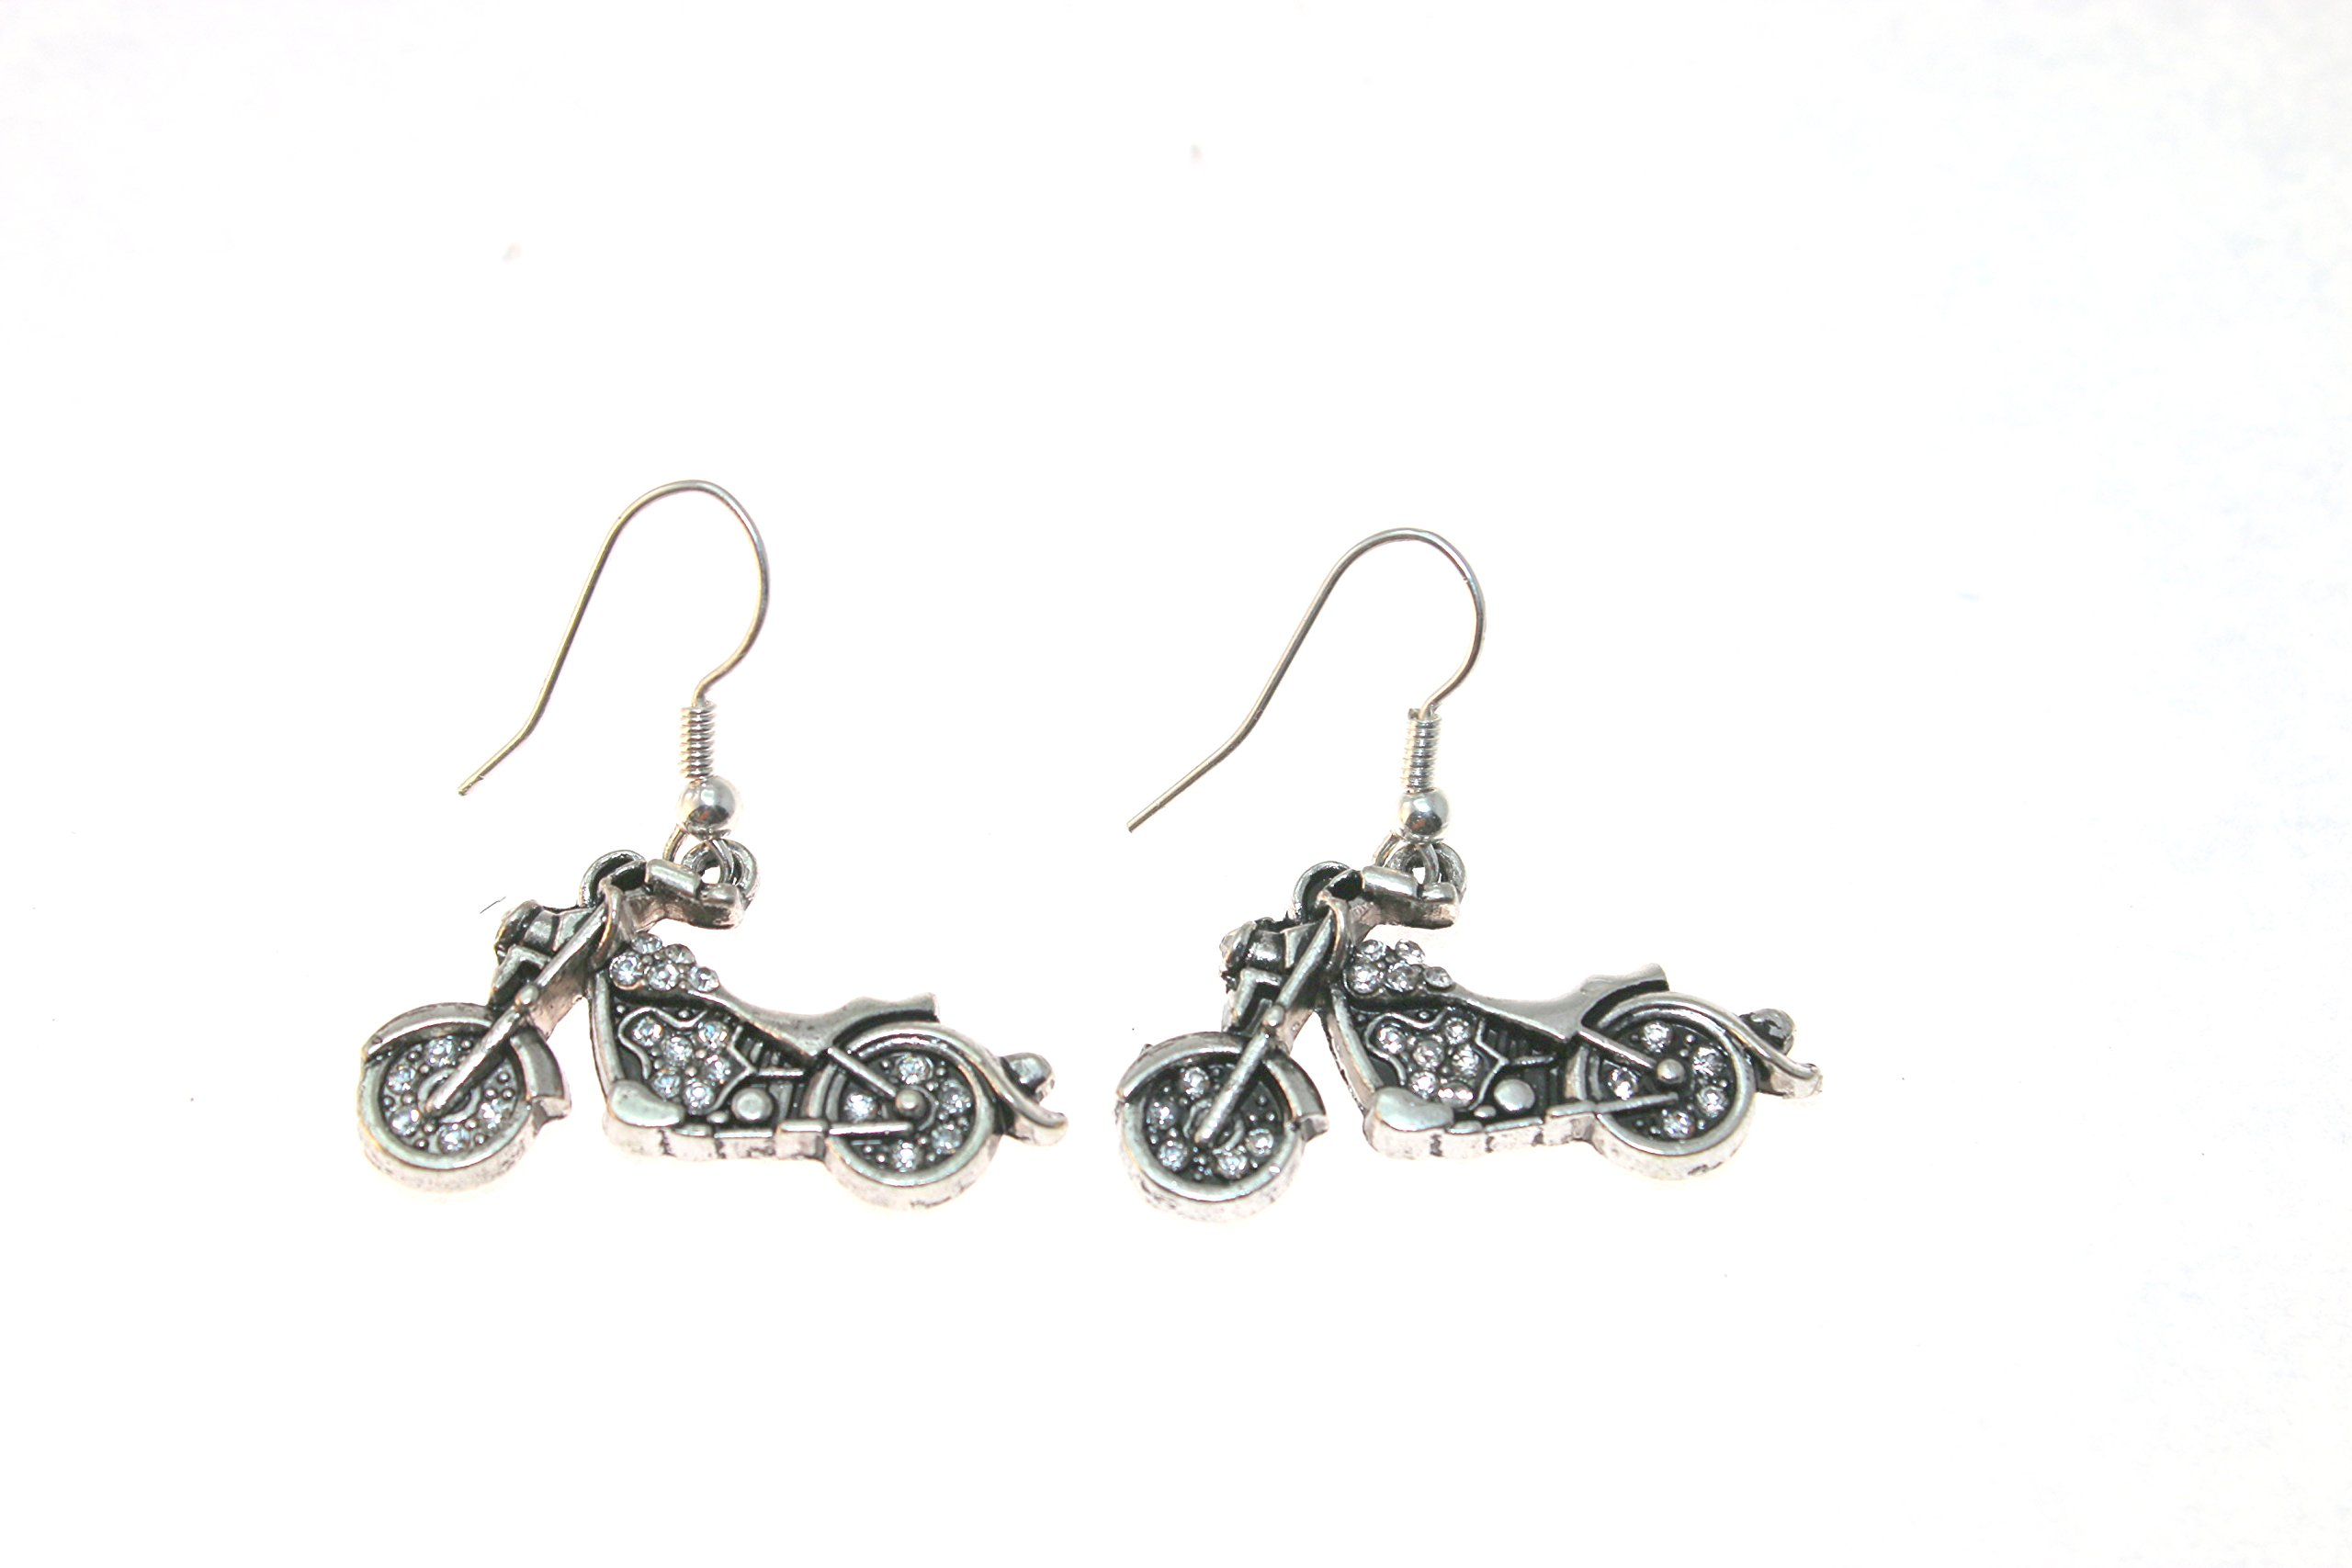 MOTORCYCLE Earrings are Embellished in Clear Crystal Rhinestones. Perfect Gift for the Woman in your Life who Loves Motorcycles or Riding on Yours:)